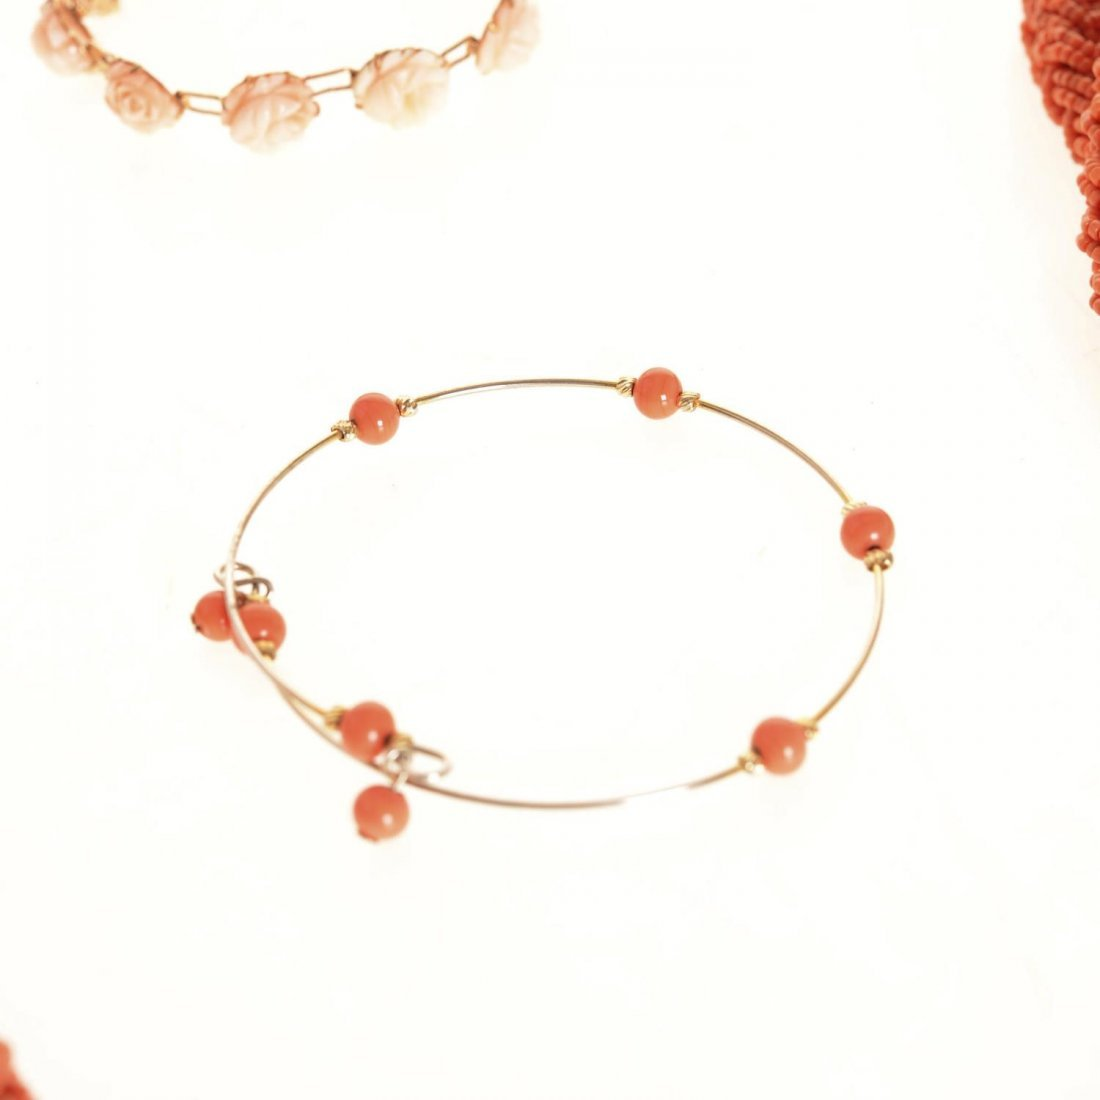 (4) pcs. Antique coral jewelry - 5